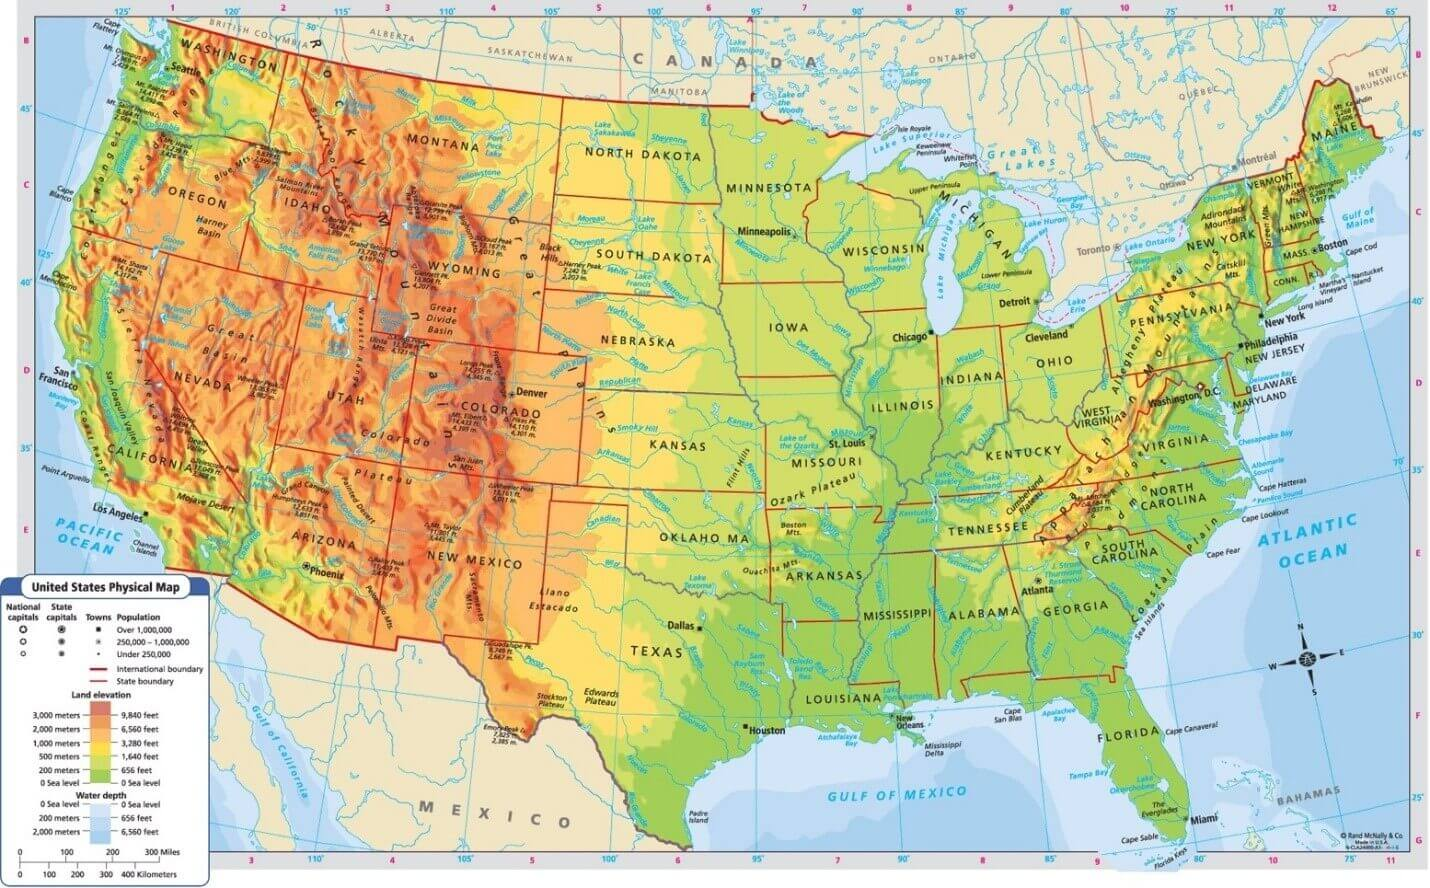 Physical Map of United States of America